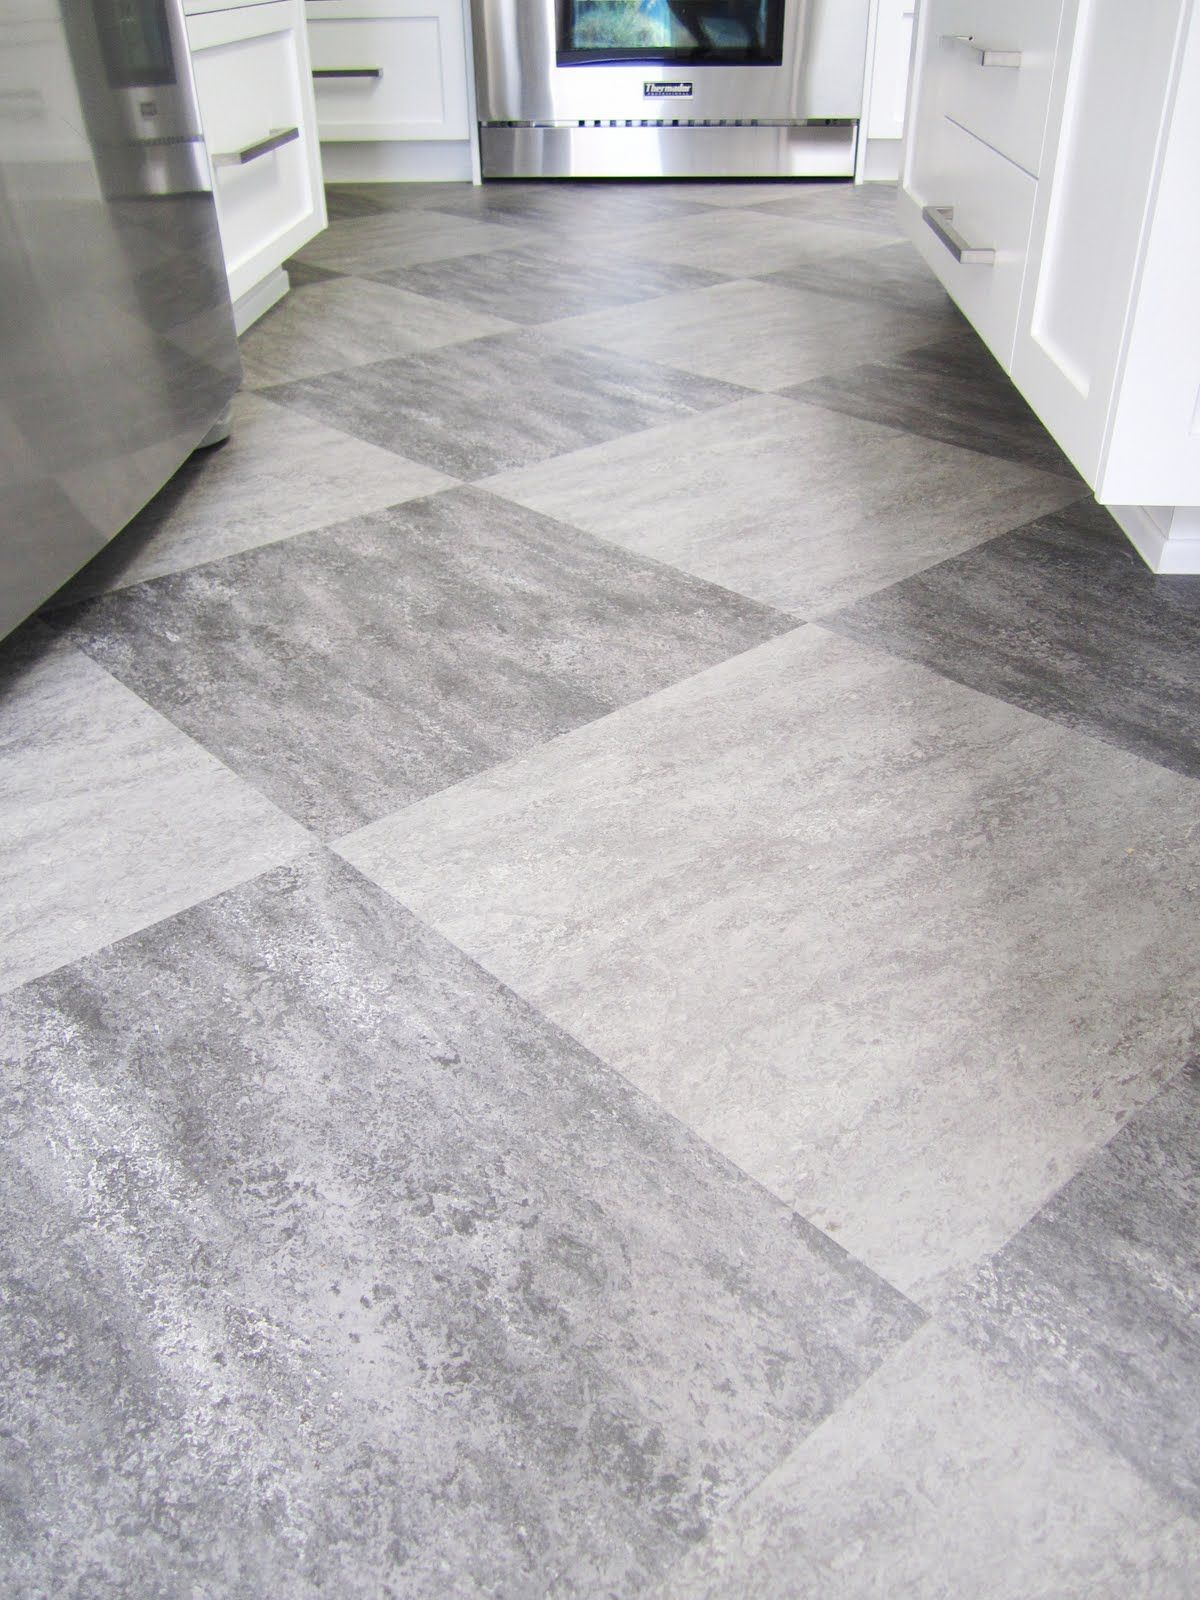 Qa architect client cook up a gorgeous functional kitchen grey cococozy qa architect client cook up a gorgeous functional kitchen cococozy grey tile floorslinoleum dailygadgetfo Images